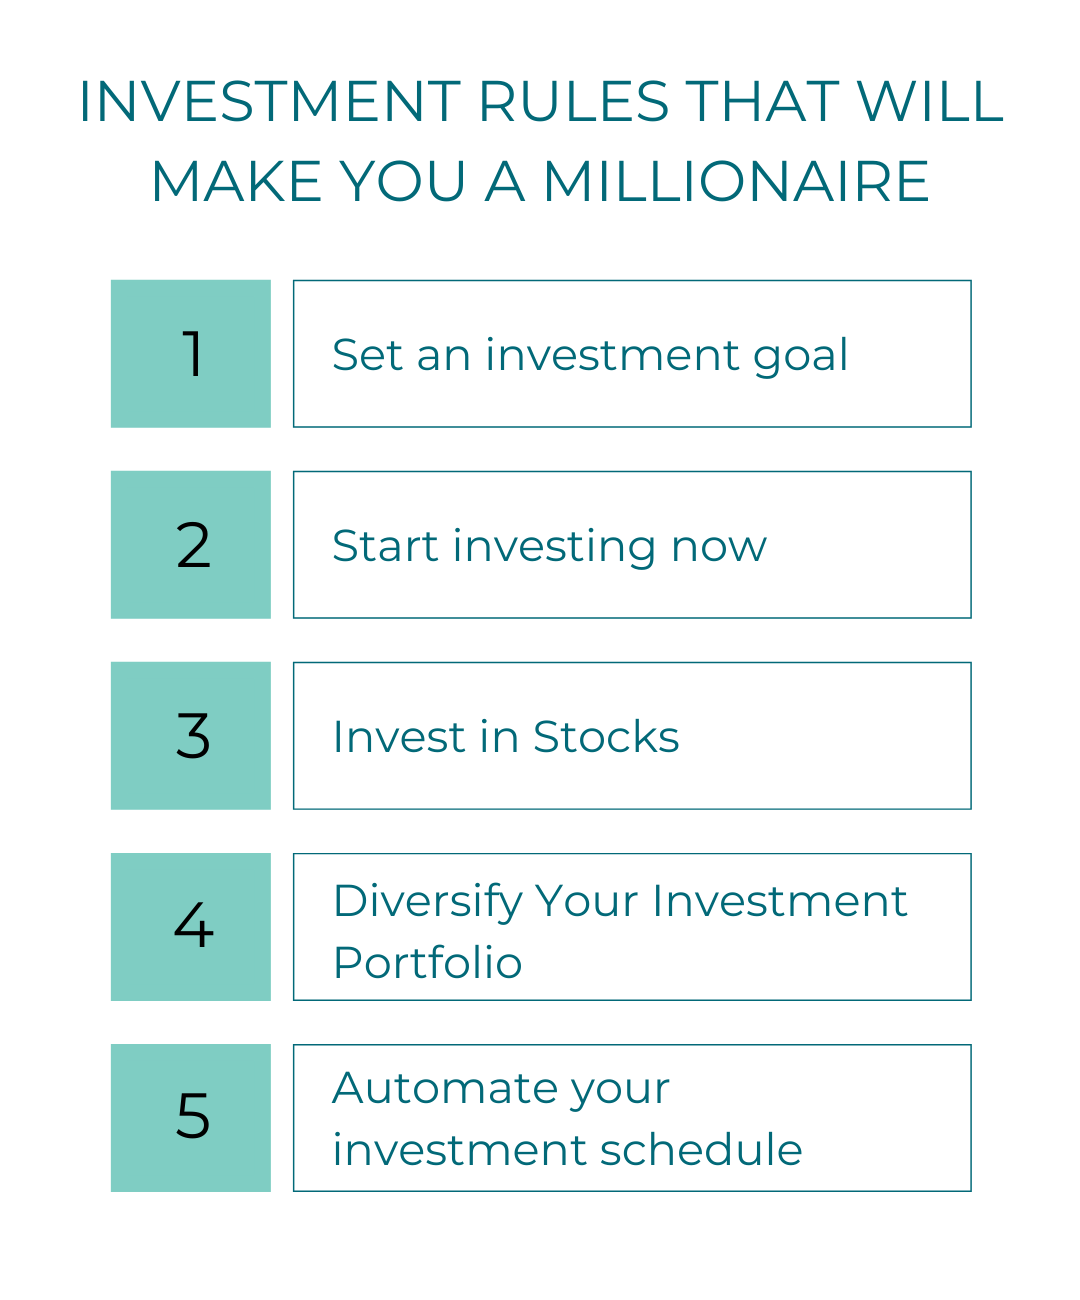 Blog Banner Types of investments that could make you become a millionaire One of the most successful strategies to becoming a millionaire is to invest in the stock market. However, you must ensure that you are investing correctly, as injecting your money into the wrong investments might lead to financial ruin. Here are three types of investments that can help you grow your money and make you a millionaire in the long run. S&P 500 ETFs S&P 500 ETFs are reasonably safe investments. While the stock market is prone to corrections and collapses, it has always recovered in the past. That indicates that, while S&P 500 ETFs will have ups and downs, they are very likely to earn good long-term returns. If you start with $3,000 and save an additional $300 each month while earning 10.00% on your investment, you will have accumulated $737,658.58 after 30 years. While becoming a millionaire takes time, S&P 500 ETFs are hands-off investments. All you have to do now is invest regularly and watch your money increase. Dividend Funds Dividend stocks are investments that pay you a cash dividend simply for owning them. You'll get a little dividend payment for each share you own every quarter or year. If you invest in a dividend fund, you won't have to worry about purchasing specific equities if that's not your thing. Dividend payouts vary per stock, but you should expect to receive a couple of dollars per share. While this may not appear to be much, it can add up to a lot more than you might expect. Most dividend funds allow you to reinvest your dividends to purchase additional shares. The more shares you possess, the more rewards you'll get. You might potentially develop a passive revenue stream over time. Assume, for example, that your investments are yielding an annual return of 10% on average. You'd be a millionaire in 30 years if you invested $400 every month, plus you'd be collecting passive income from dividend payments. Individual Stocks Individual stocks may be a good fit for y